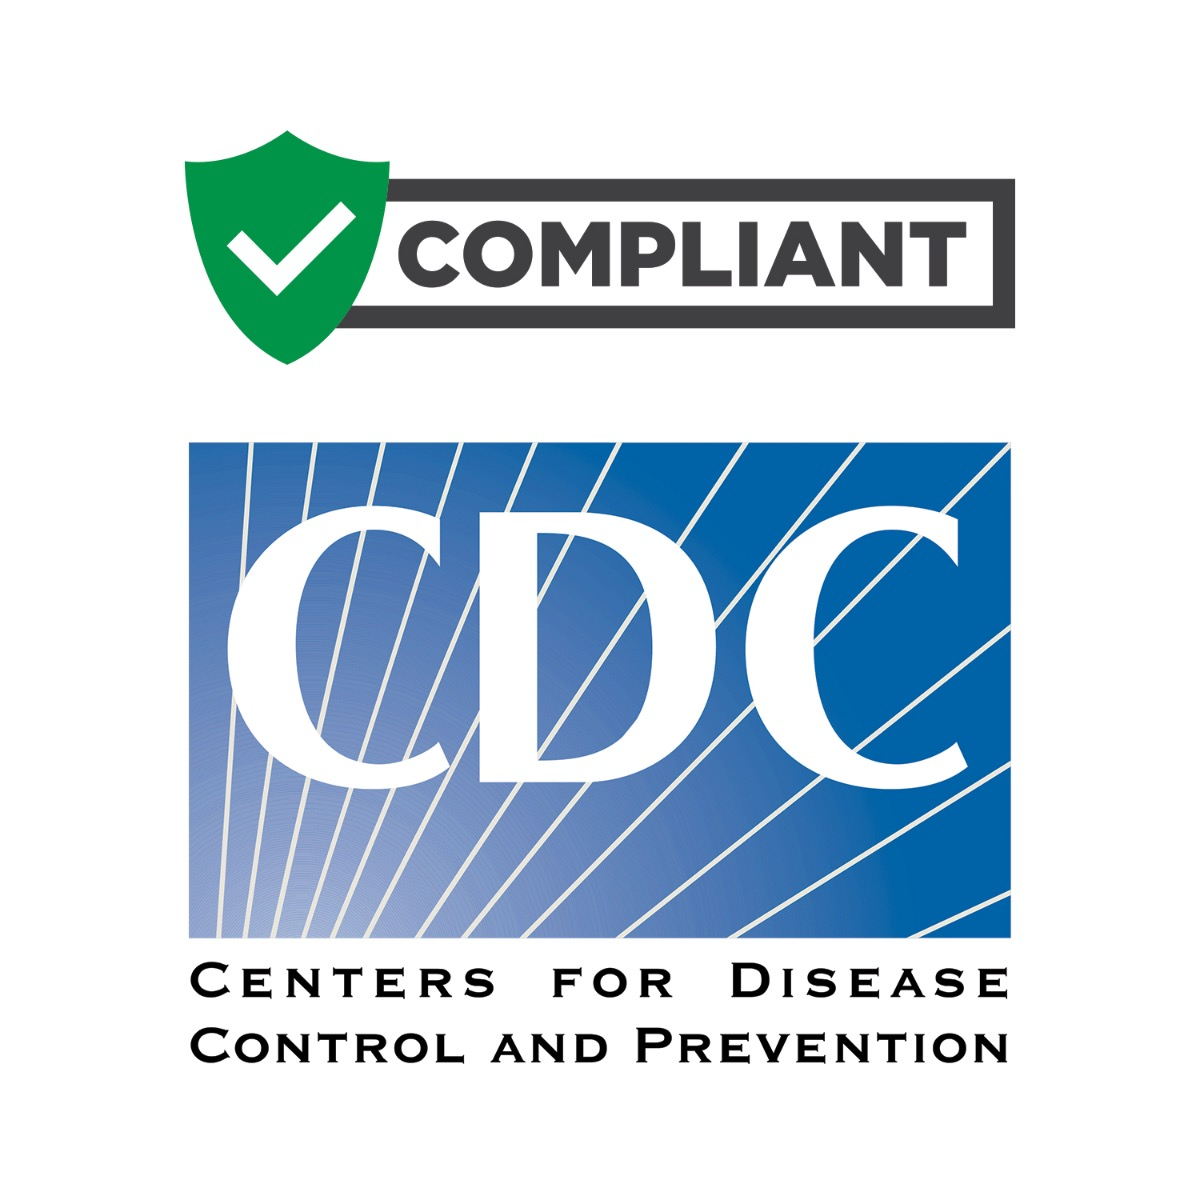 CDC_compliant